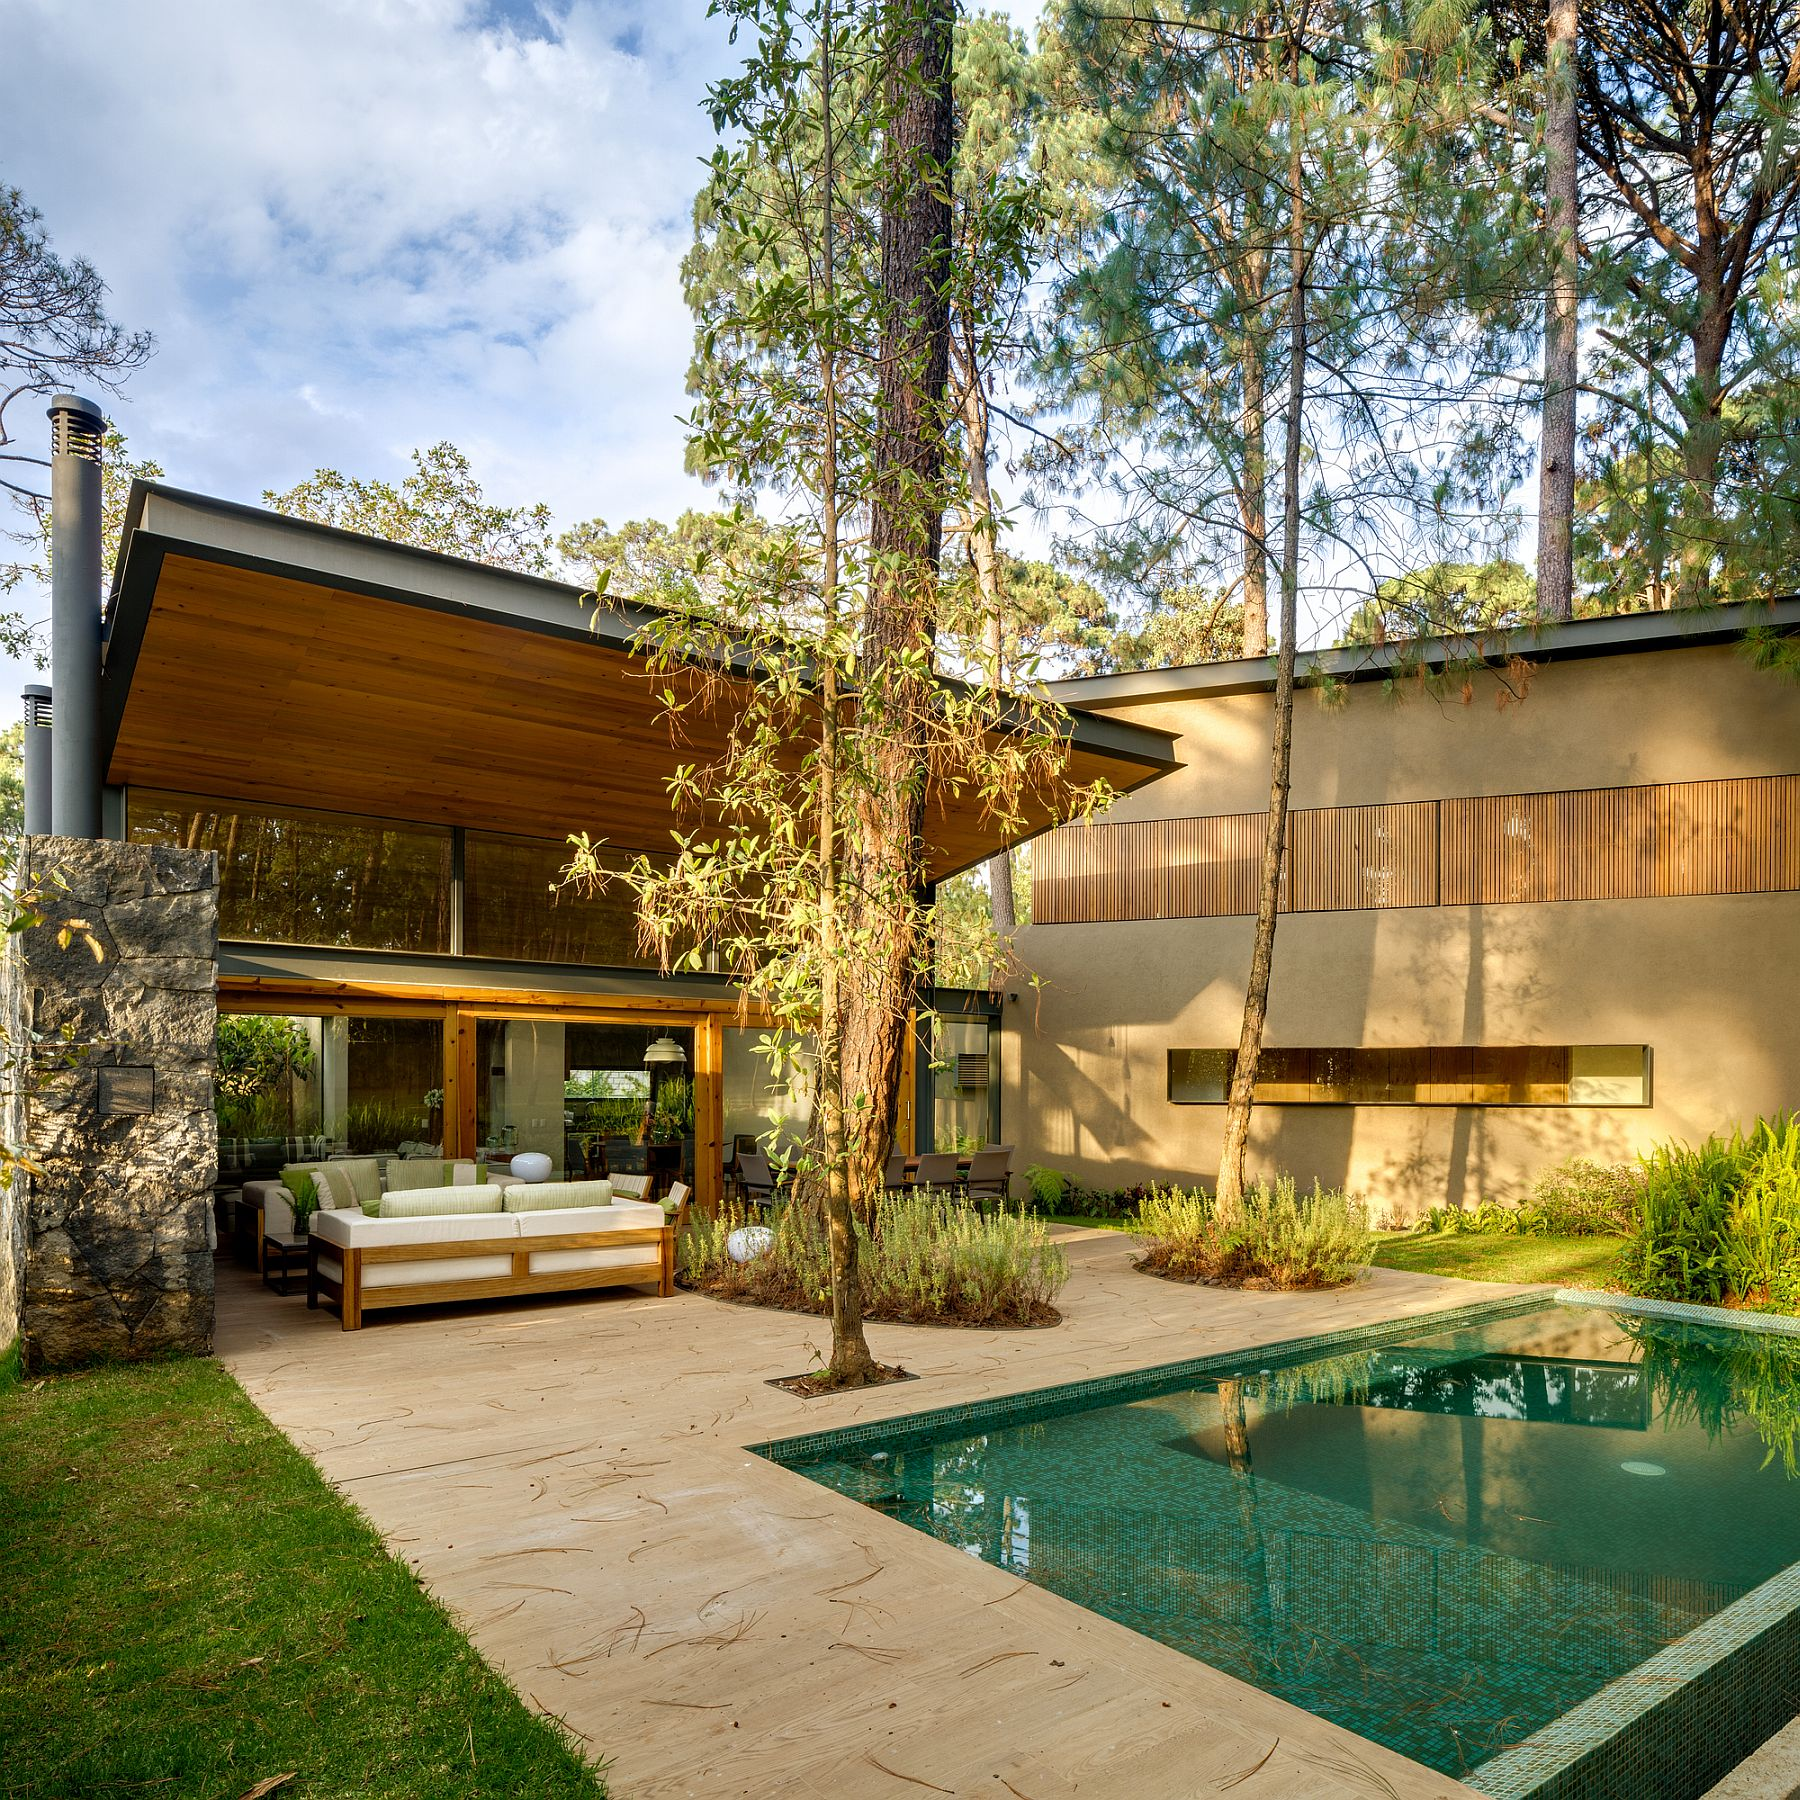 Outdoor pool and Jacuzzi add luxury to the nature-centric homes